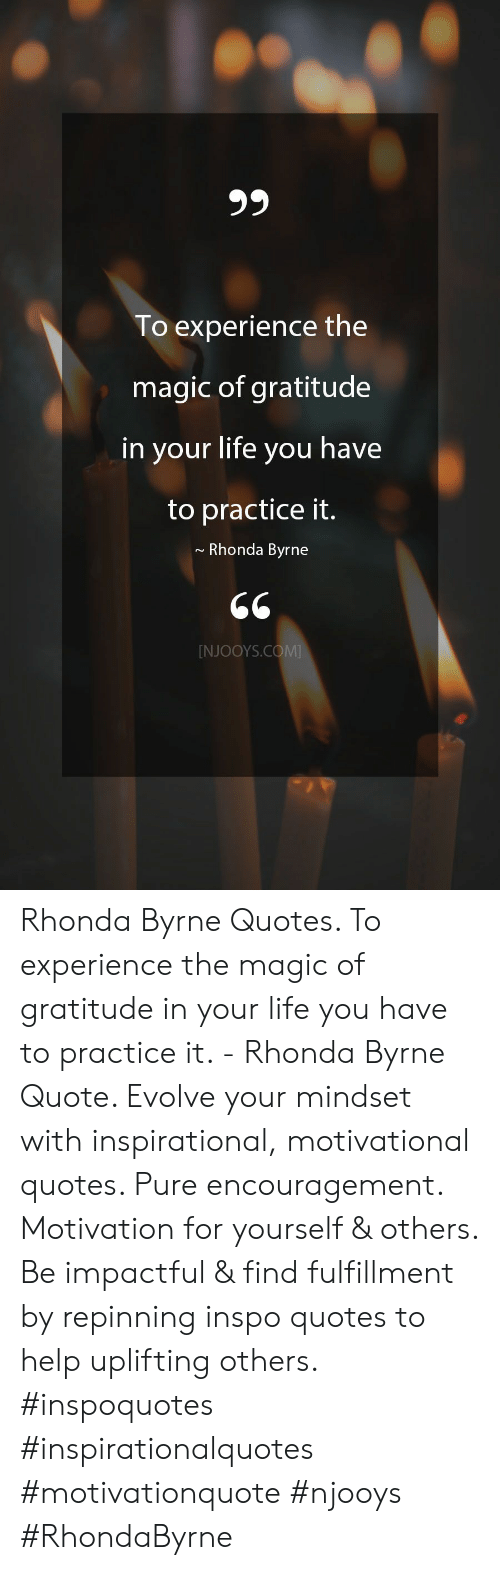 Life, Evolve, and Help: 99  To experience the  magic of gratitude  in your life you have  to practice it.  Rhonda Byrne  [NJOOYS.COM Rhonda Byrne Quotes. To experience the magic of gratitude in your life you have to practice it. - Rhonda Byrne Quote. Evolve your mindset with inspirational, motivational quotes. Pure encouragement. Motivation for yourself & others. Be impactful & find fulfillment by repinning inspo quotes to help uplifting others. #inspoquotes #inspirationalquotes #motivationquote #njooys #RhondaByrne